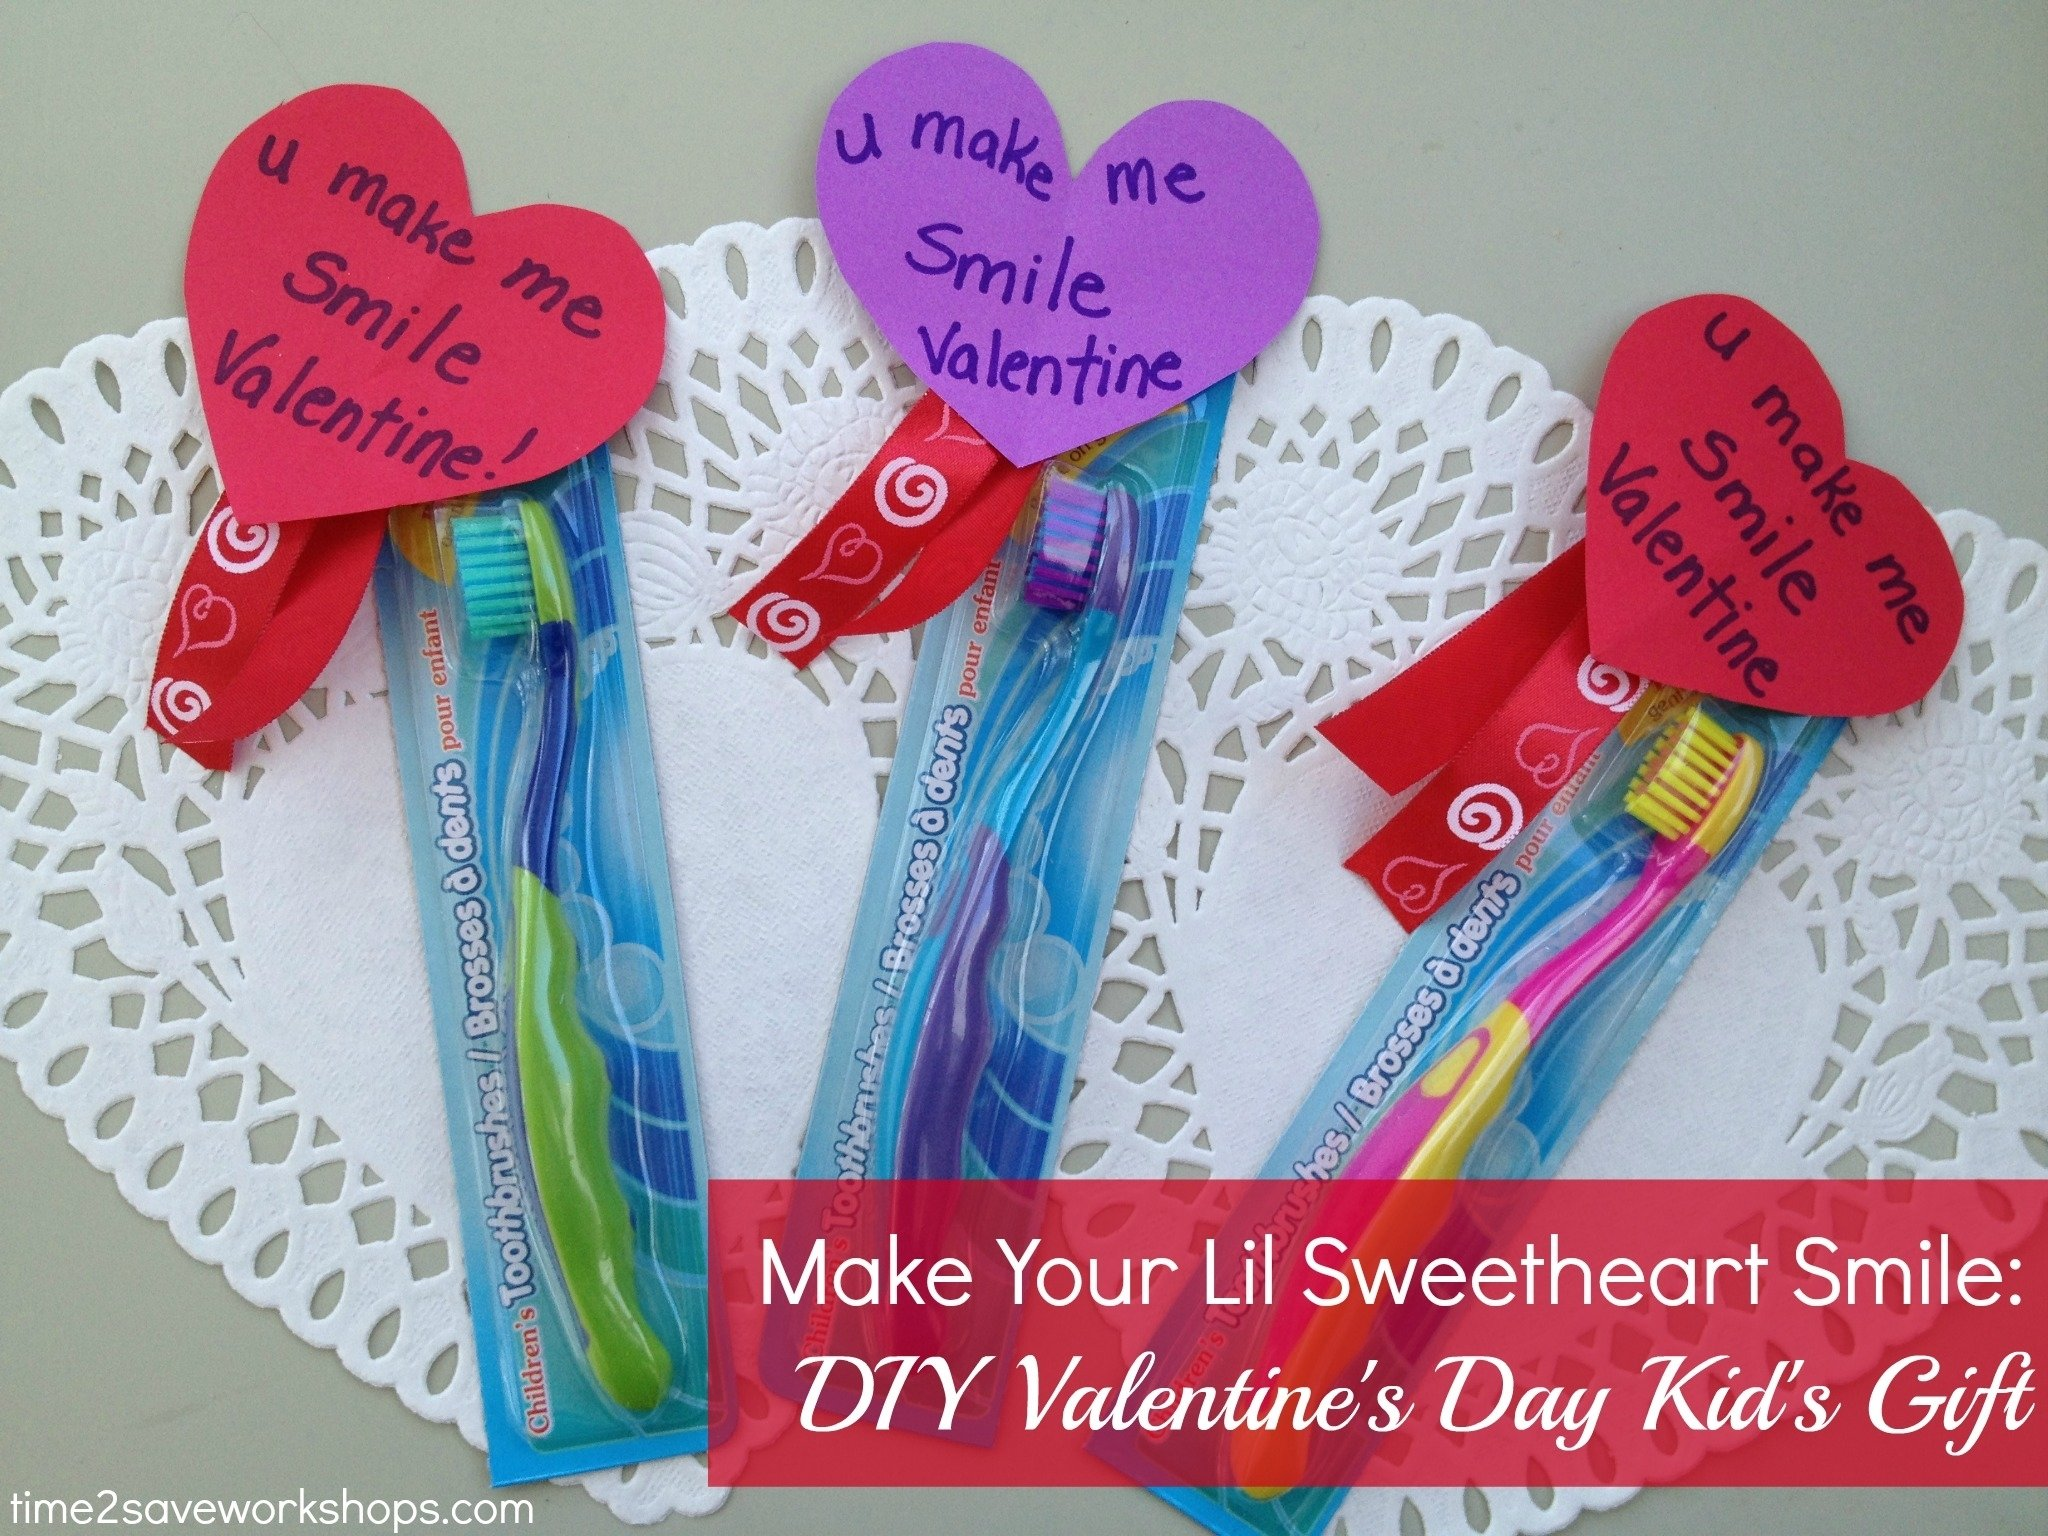 10 Attractive Cute Valentines Day Ideas For Kids valentine day gift ideas for kids startupcorner co 2020